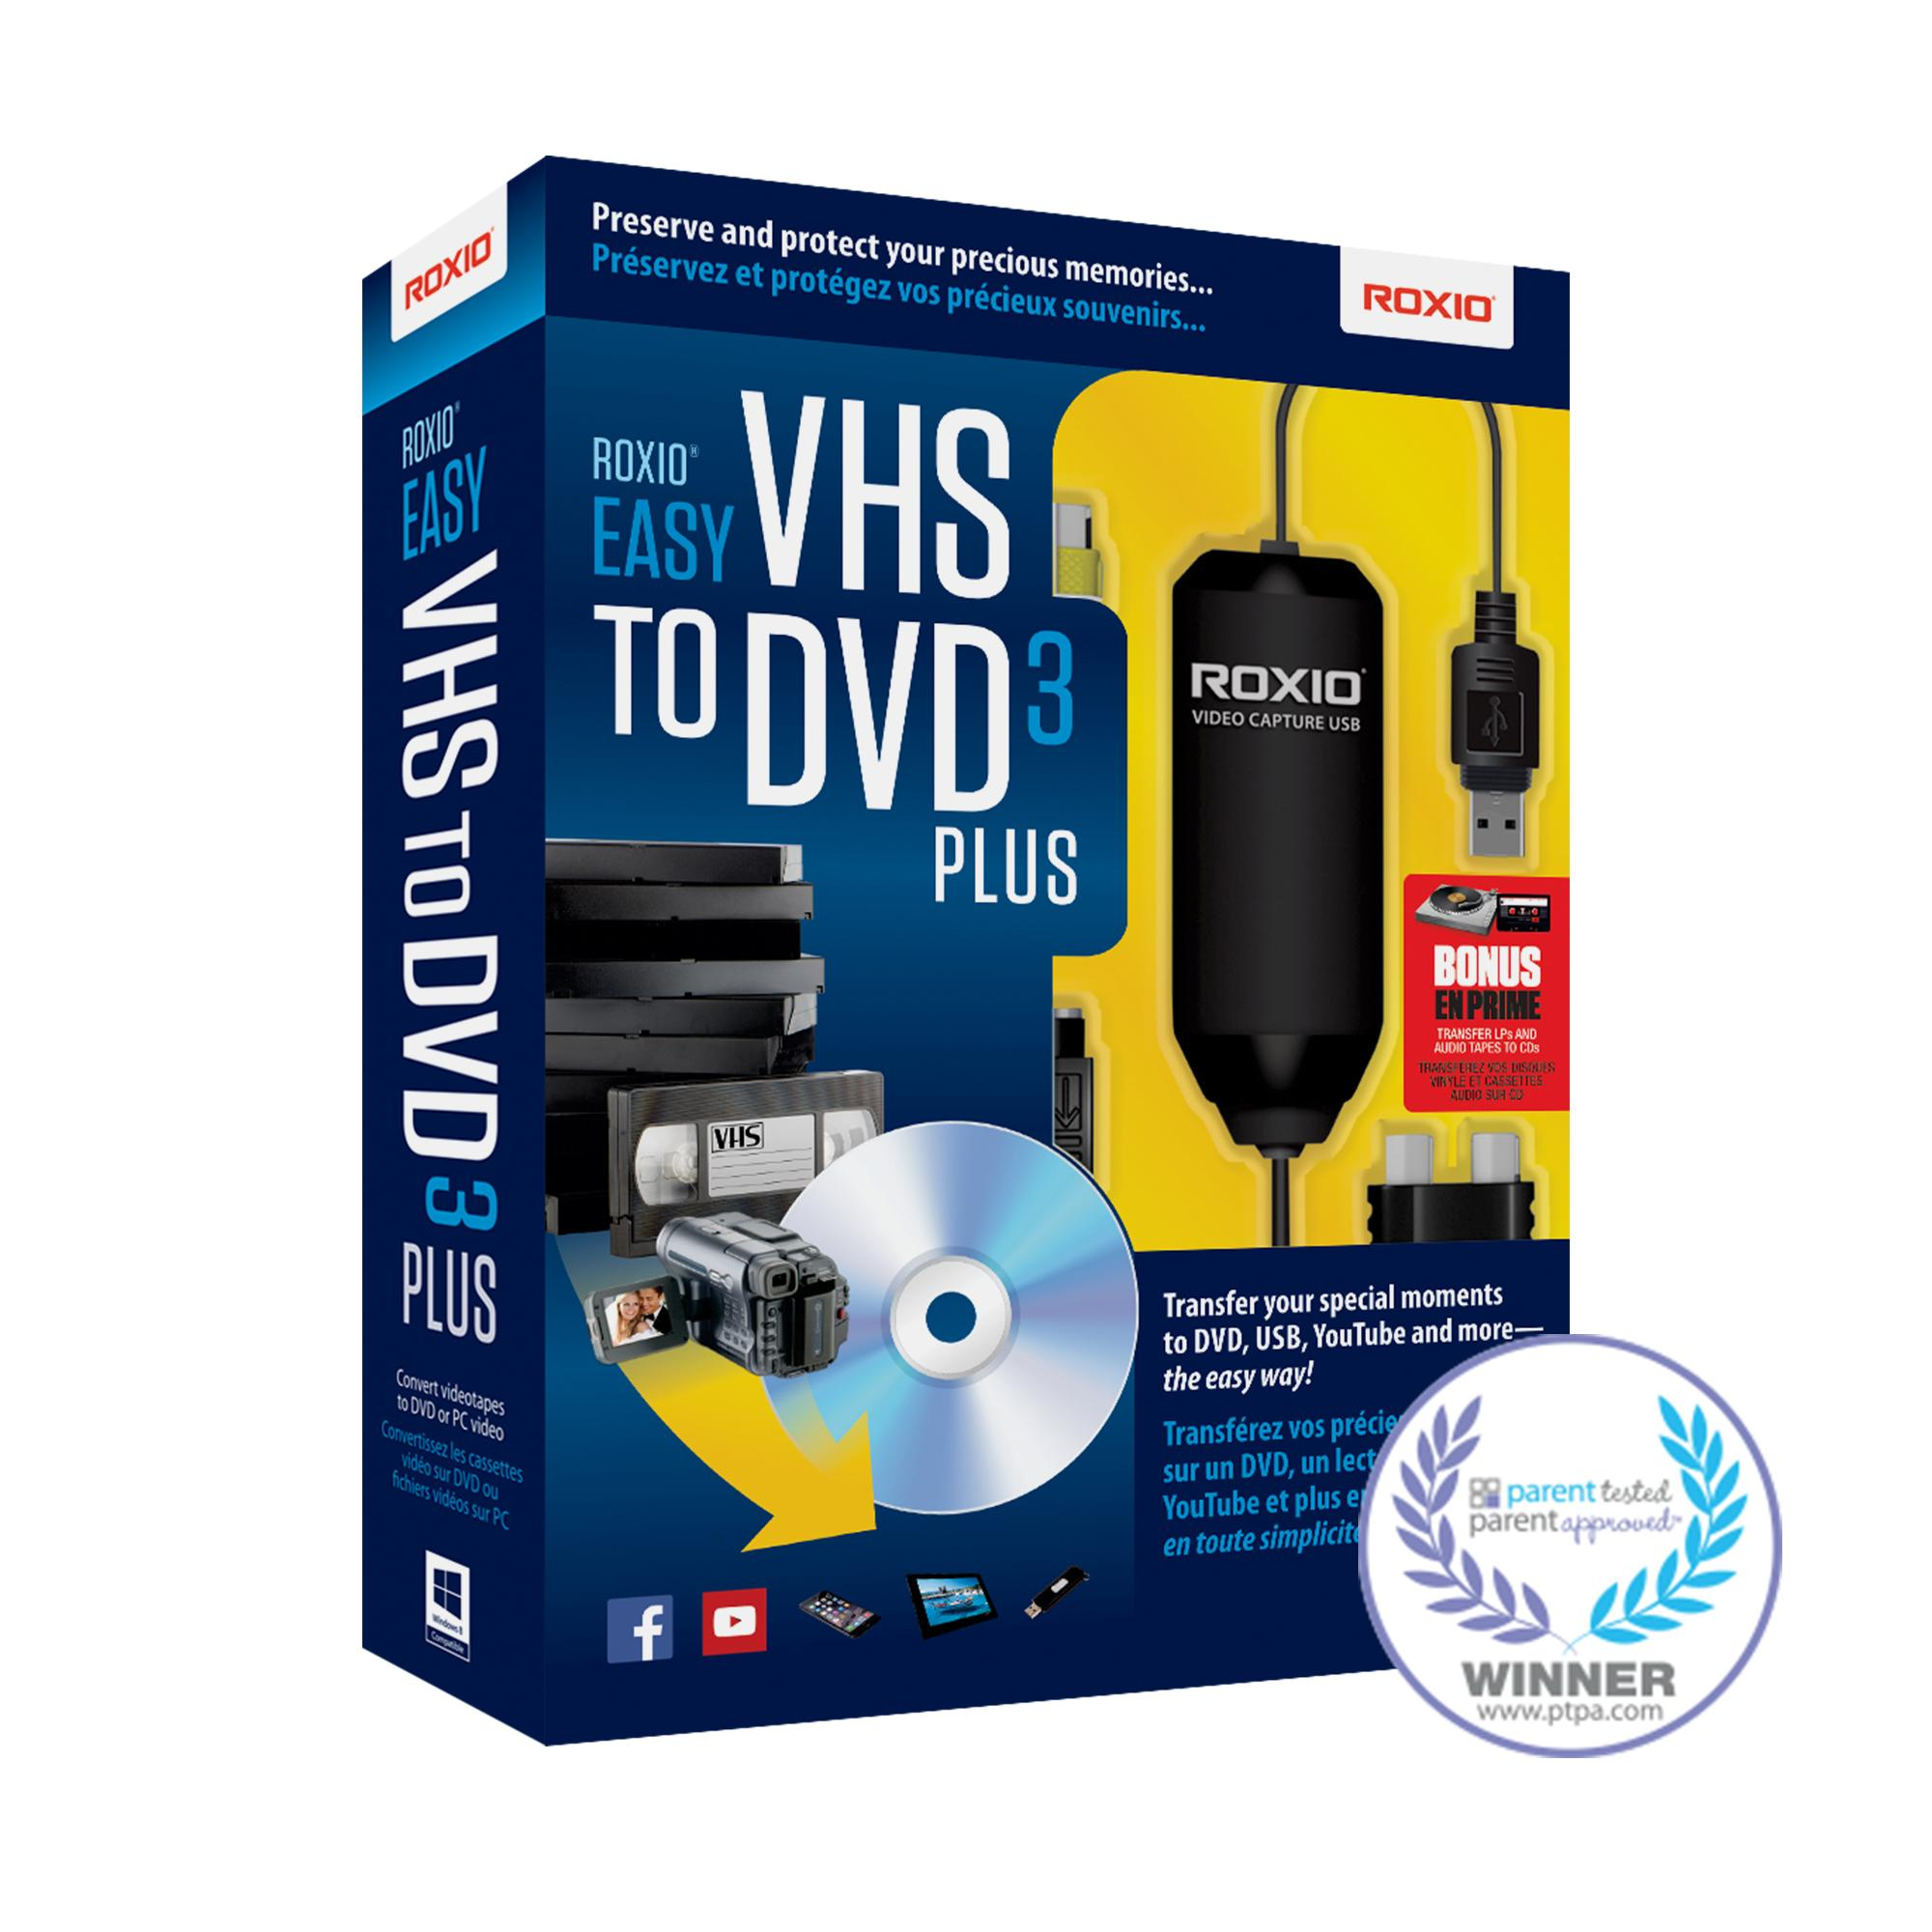 roxio easy vhs to dvd 3 plus video converter for pc. Black Bedroom Furniture Sets. Home Design Ideas